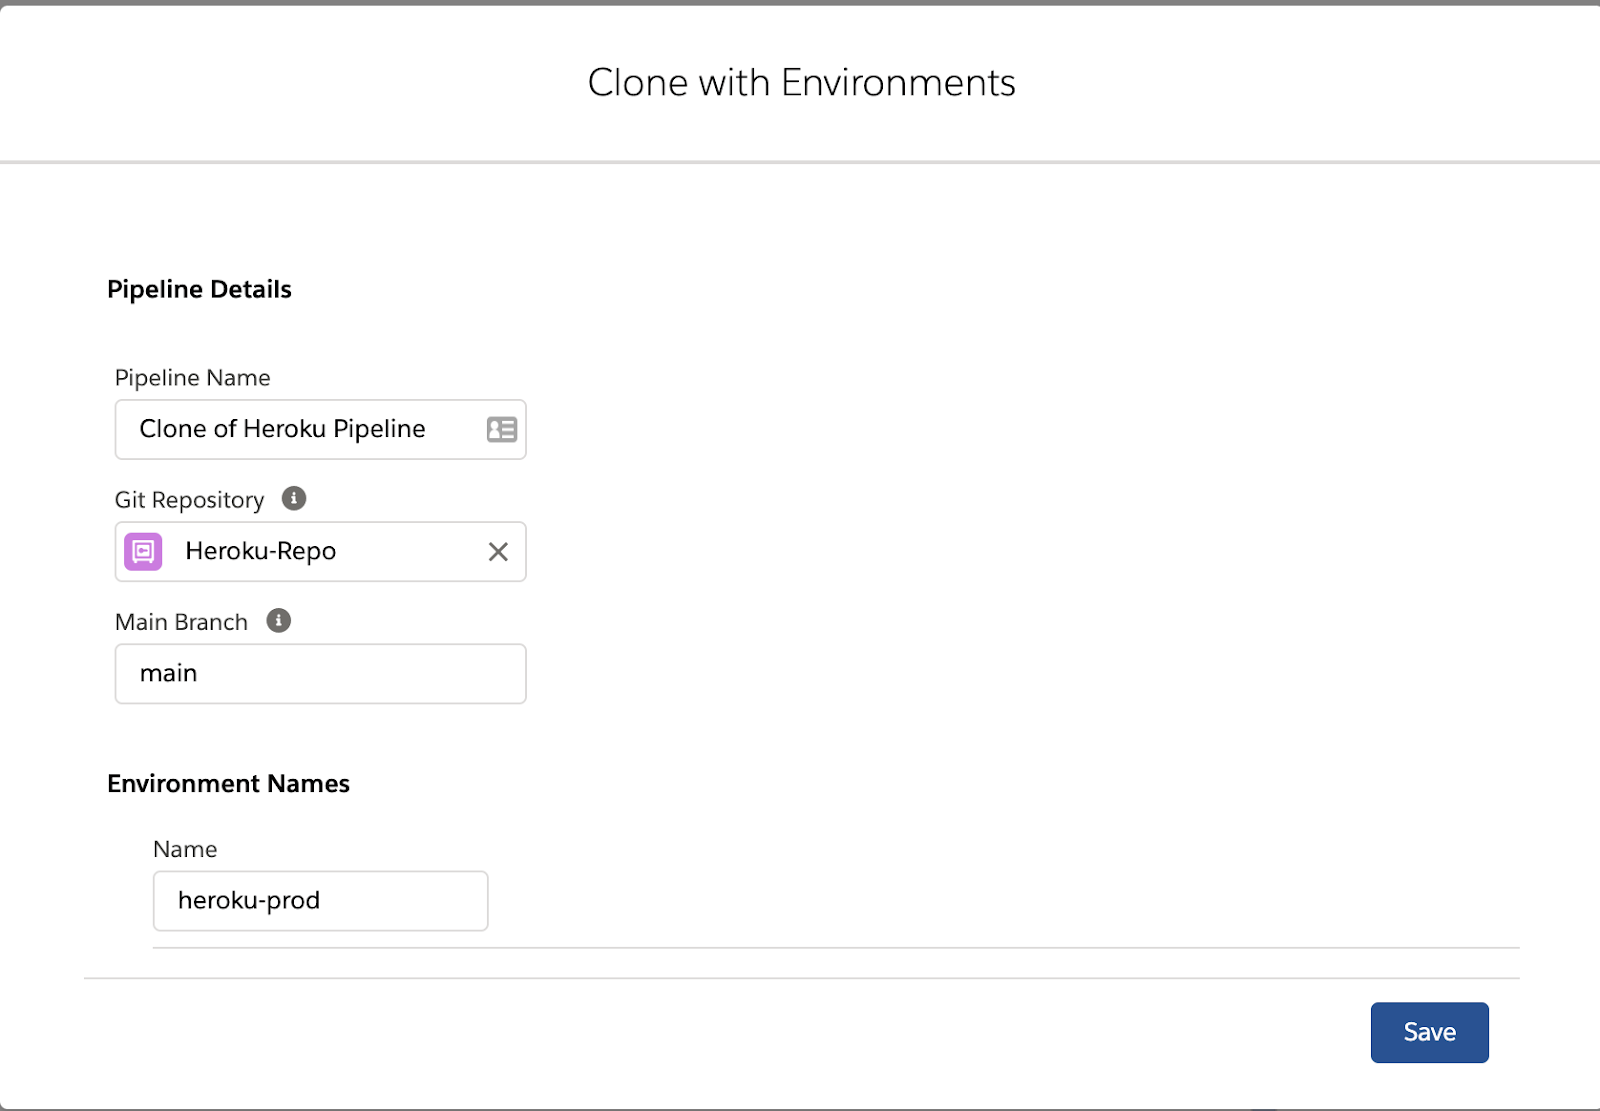 Clone with Environments popup